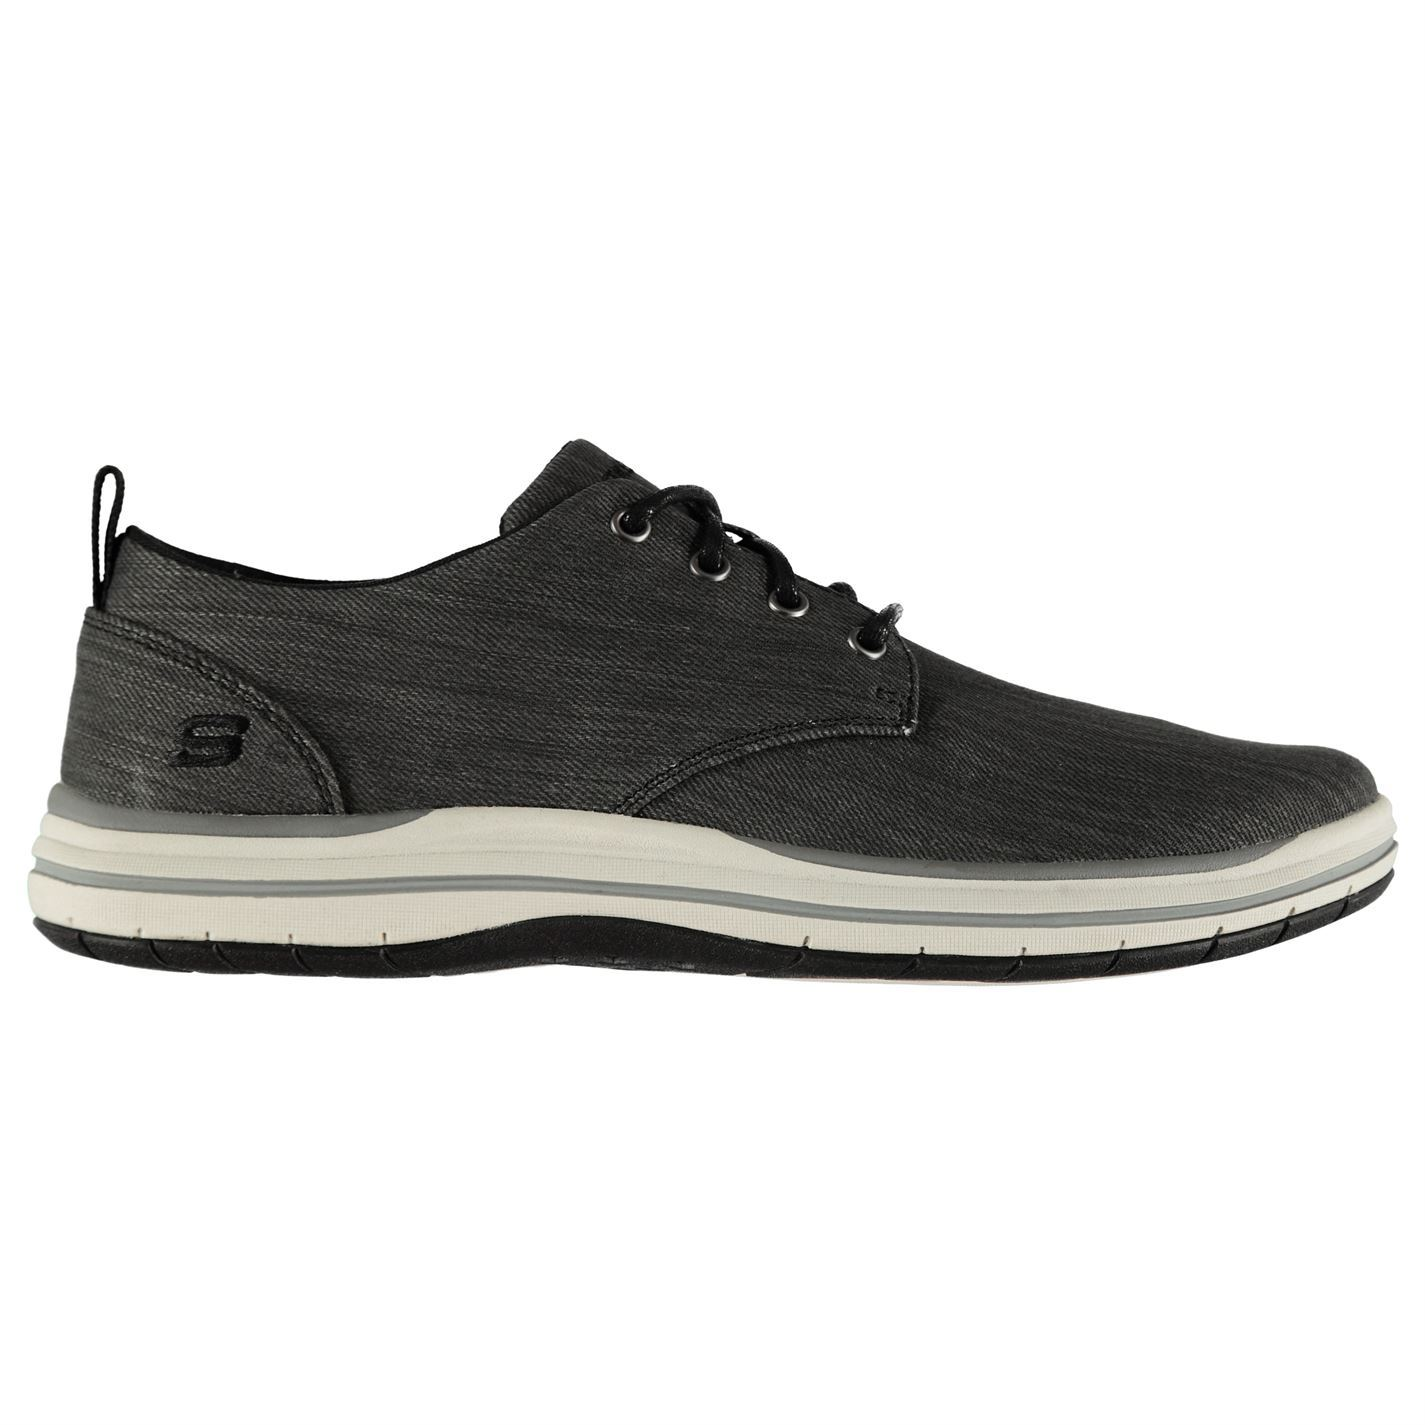 Skechers  Uomo Elson Moten Schuhes Casual Lace Up Lightweight Lightweight Lightweight Canvas Rounded Toe 40ff44